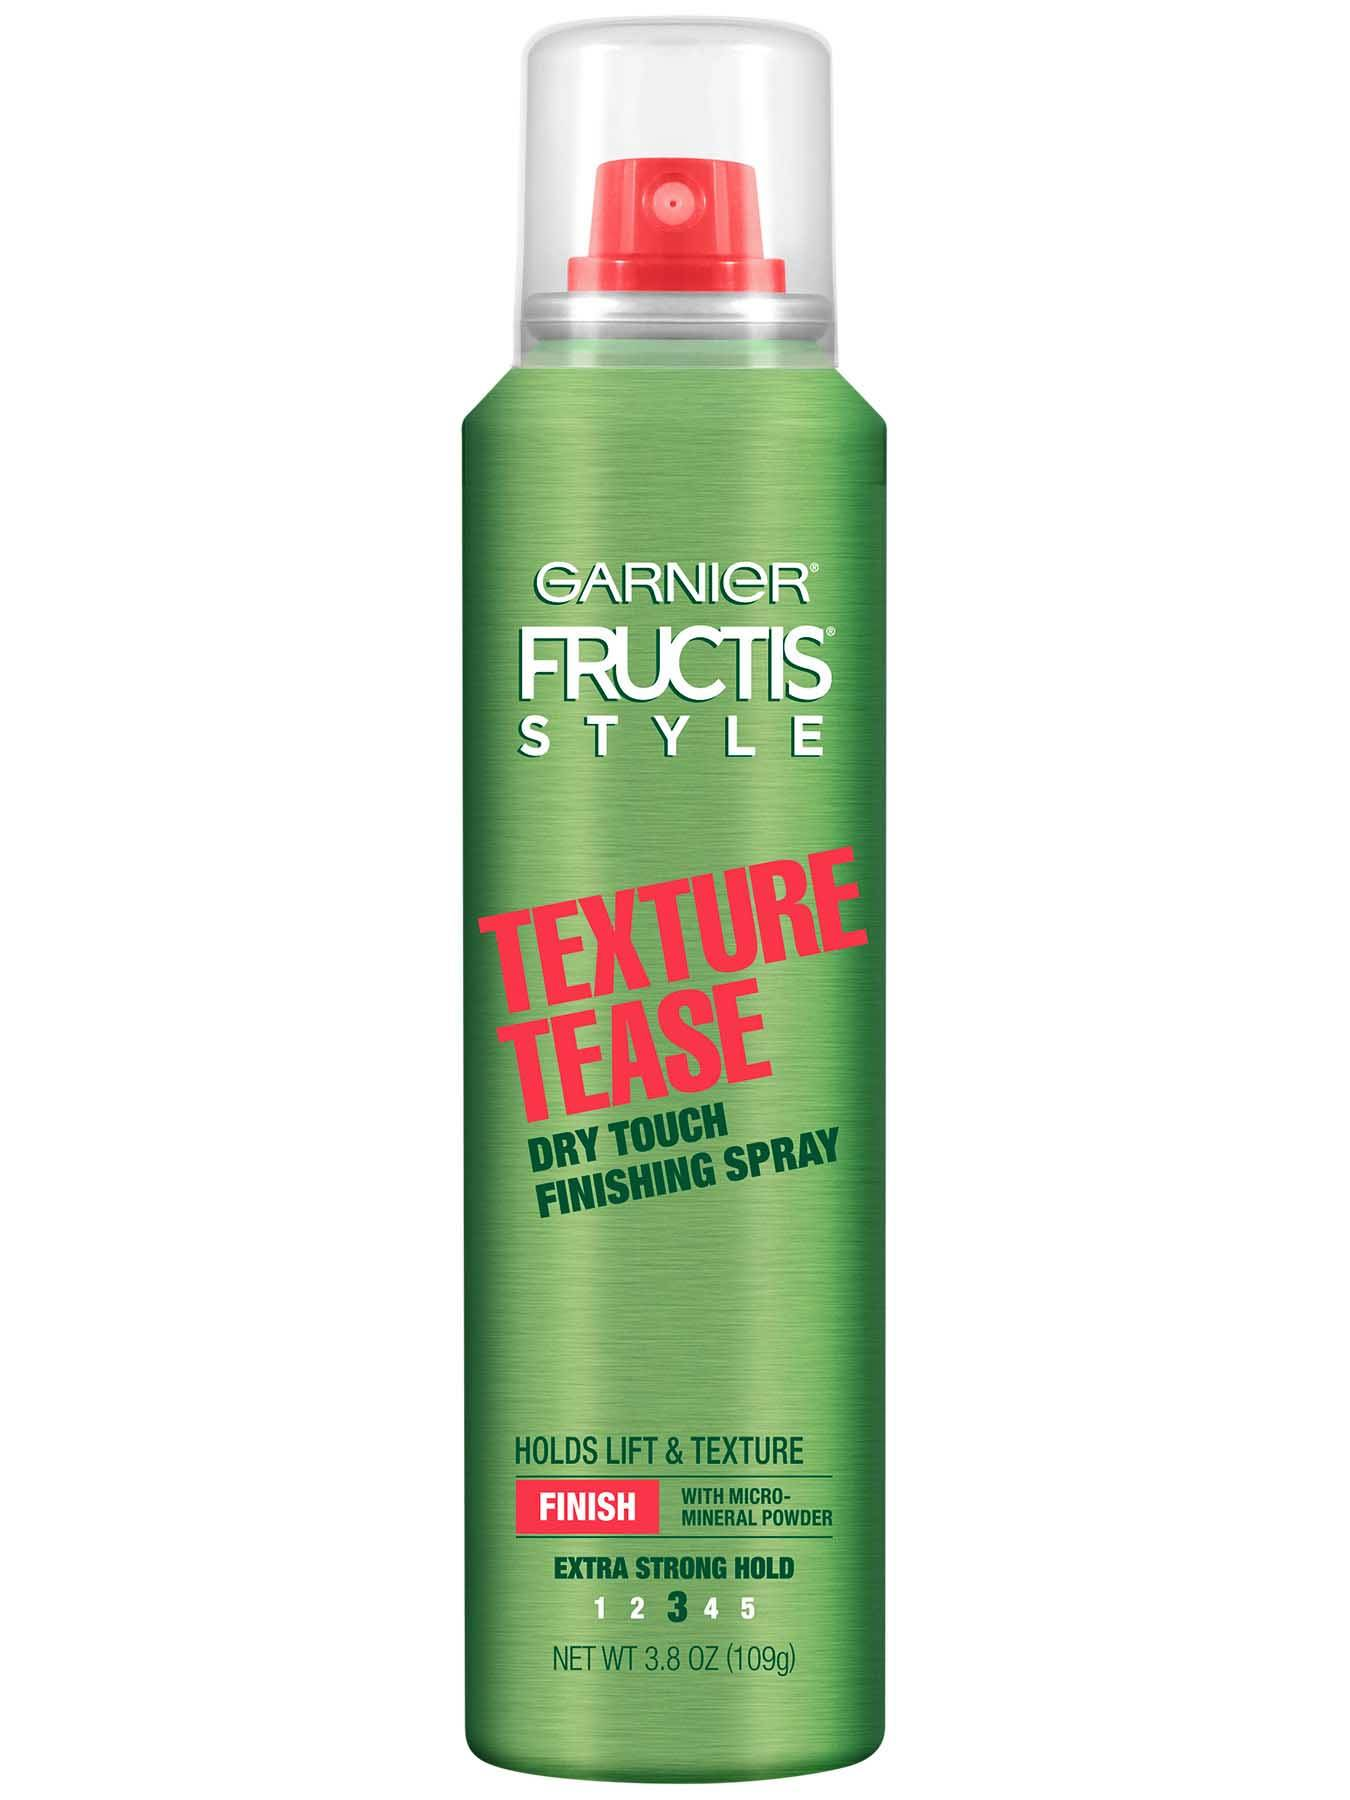 Garnier Fructis Style Texture Tease Finishing Spray Front